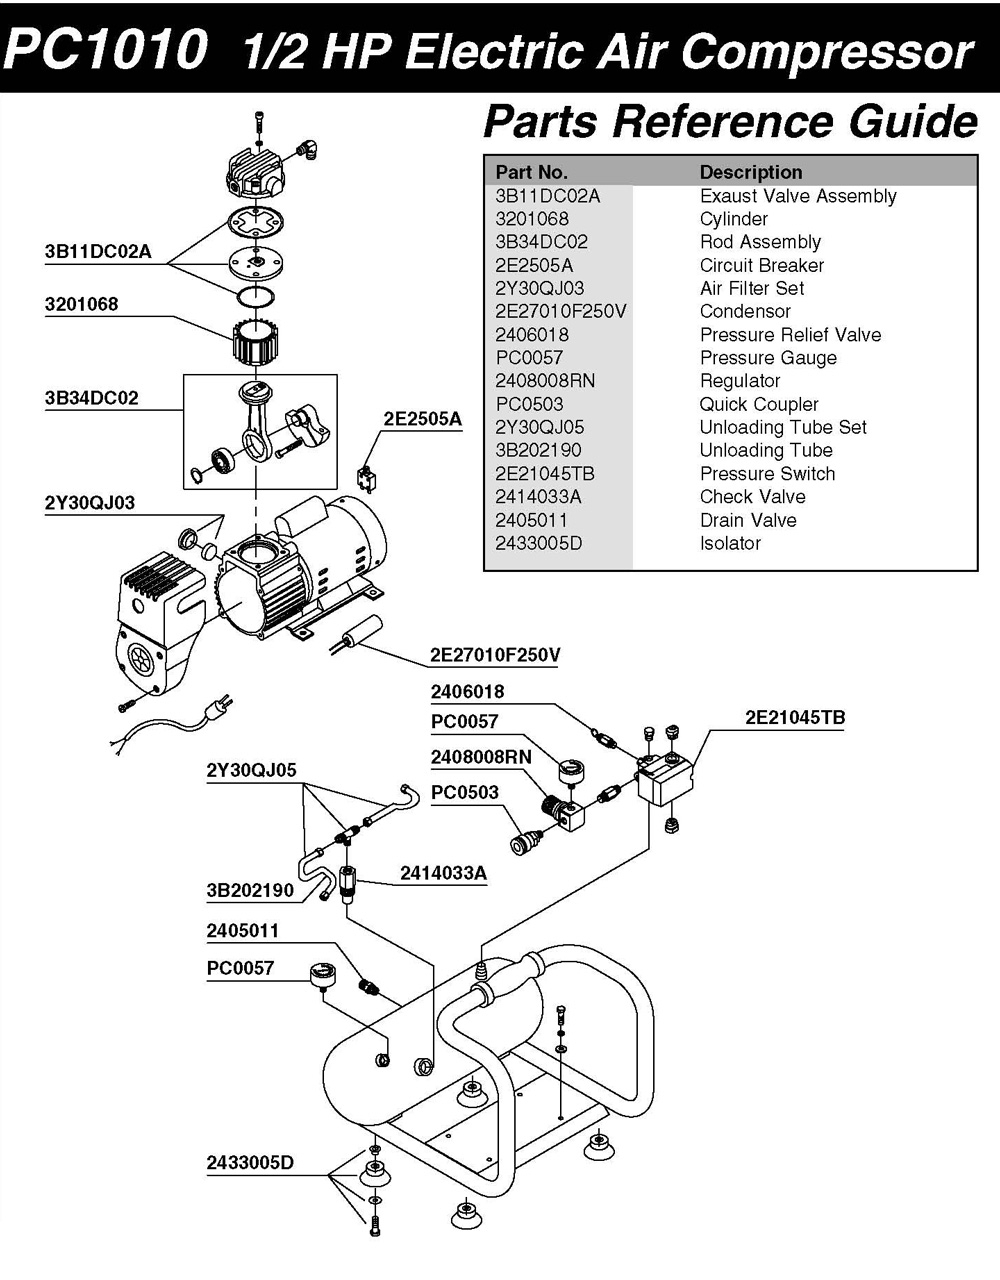 Senco Pc1010 Air Compressor Parts for Ingersoll Rand Air Compressor Parts Diagram